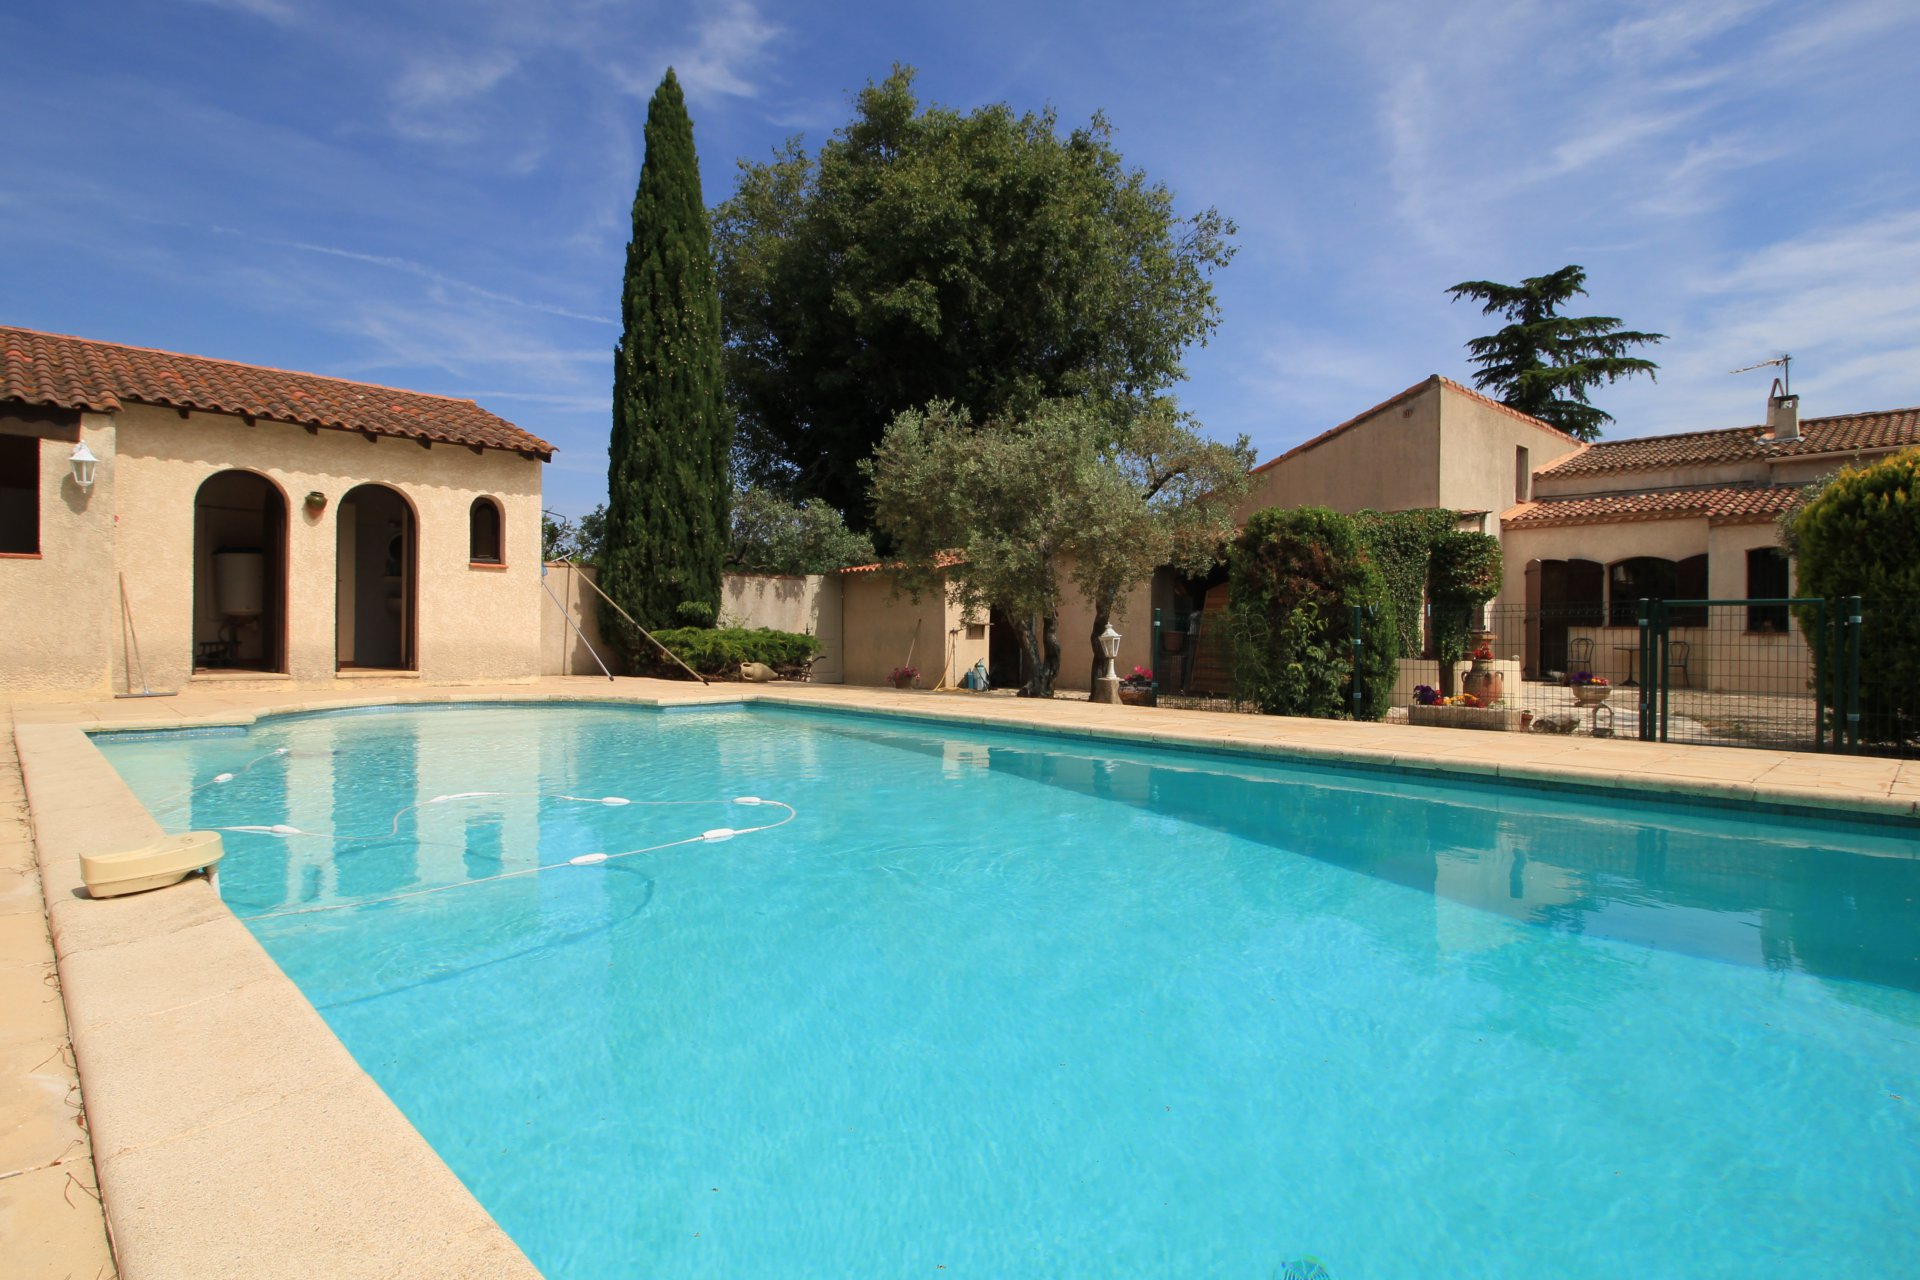 3 bedroom villa for sale nd - Arles Pont de Crau